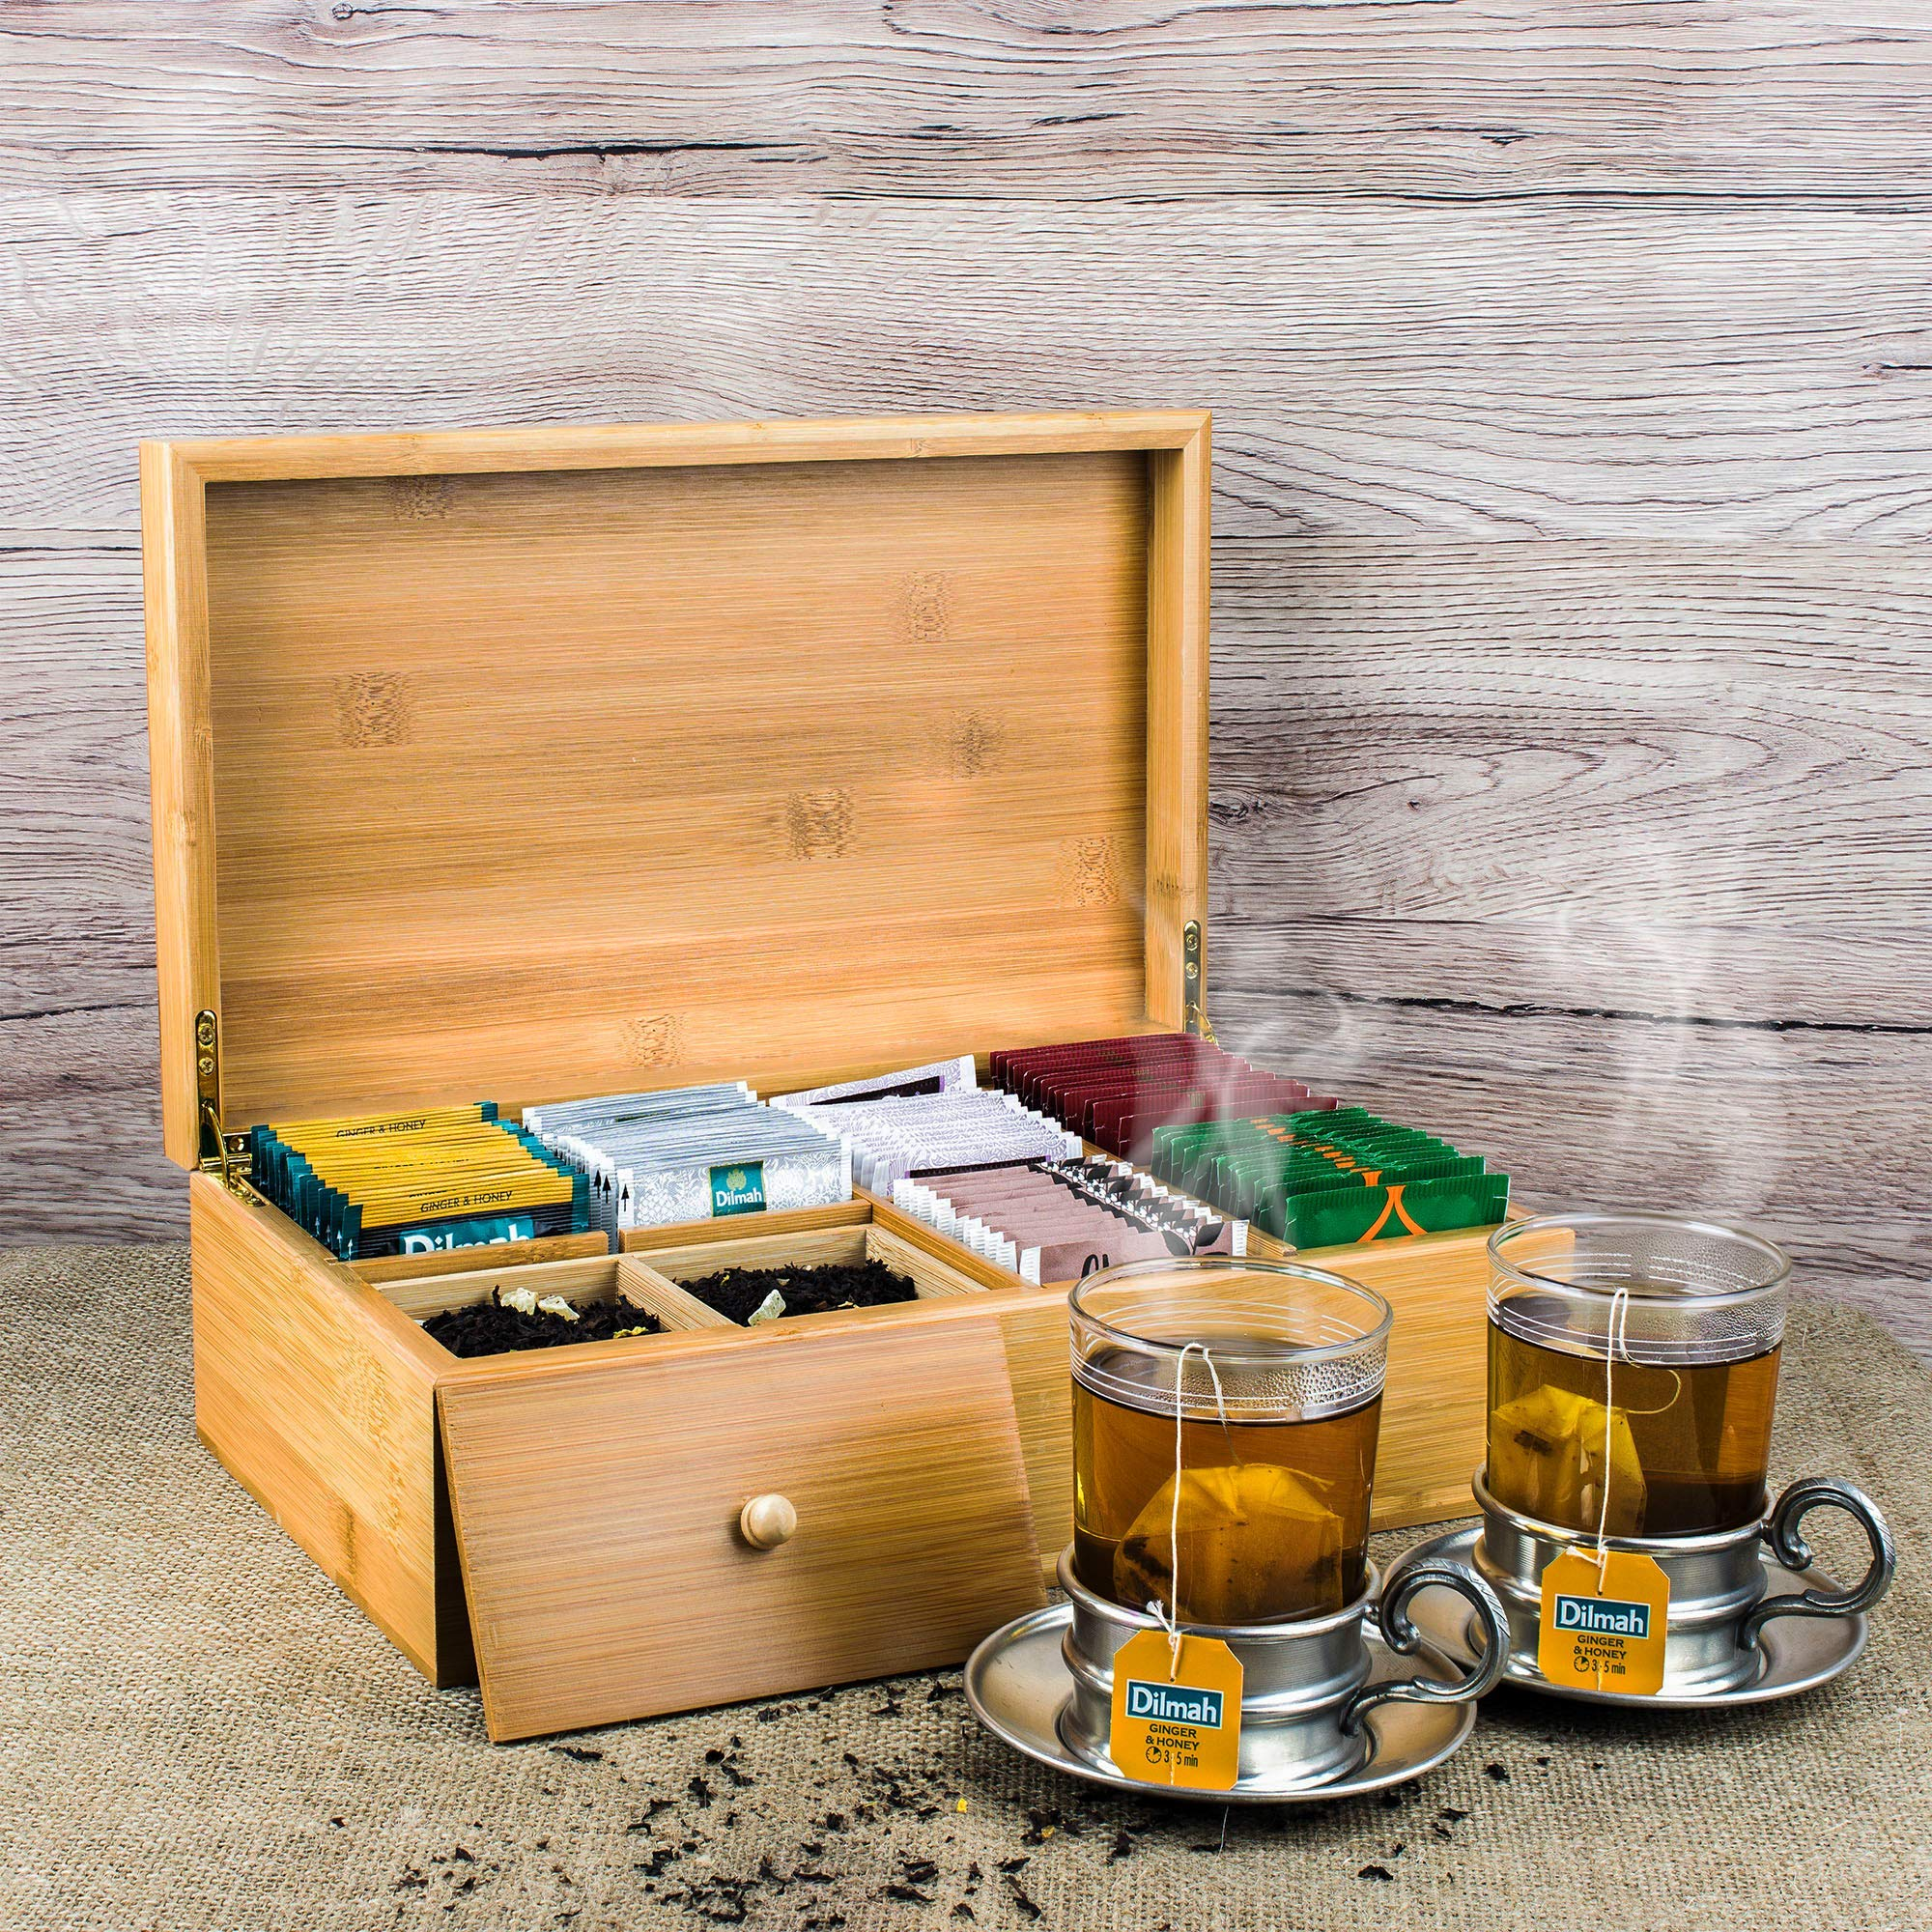 Lyevon Tea Storage Organizer Bamboo Chest Box with 8 Adjustable Compartments for Assorted Tea Bags or Spices -holds 125 Tea Bags by Lyevon (Image #7)